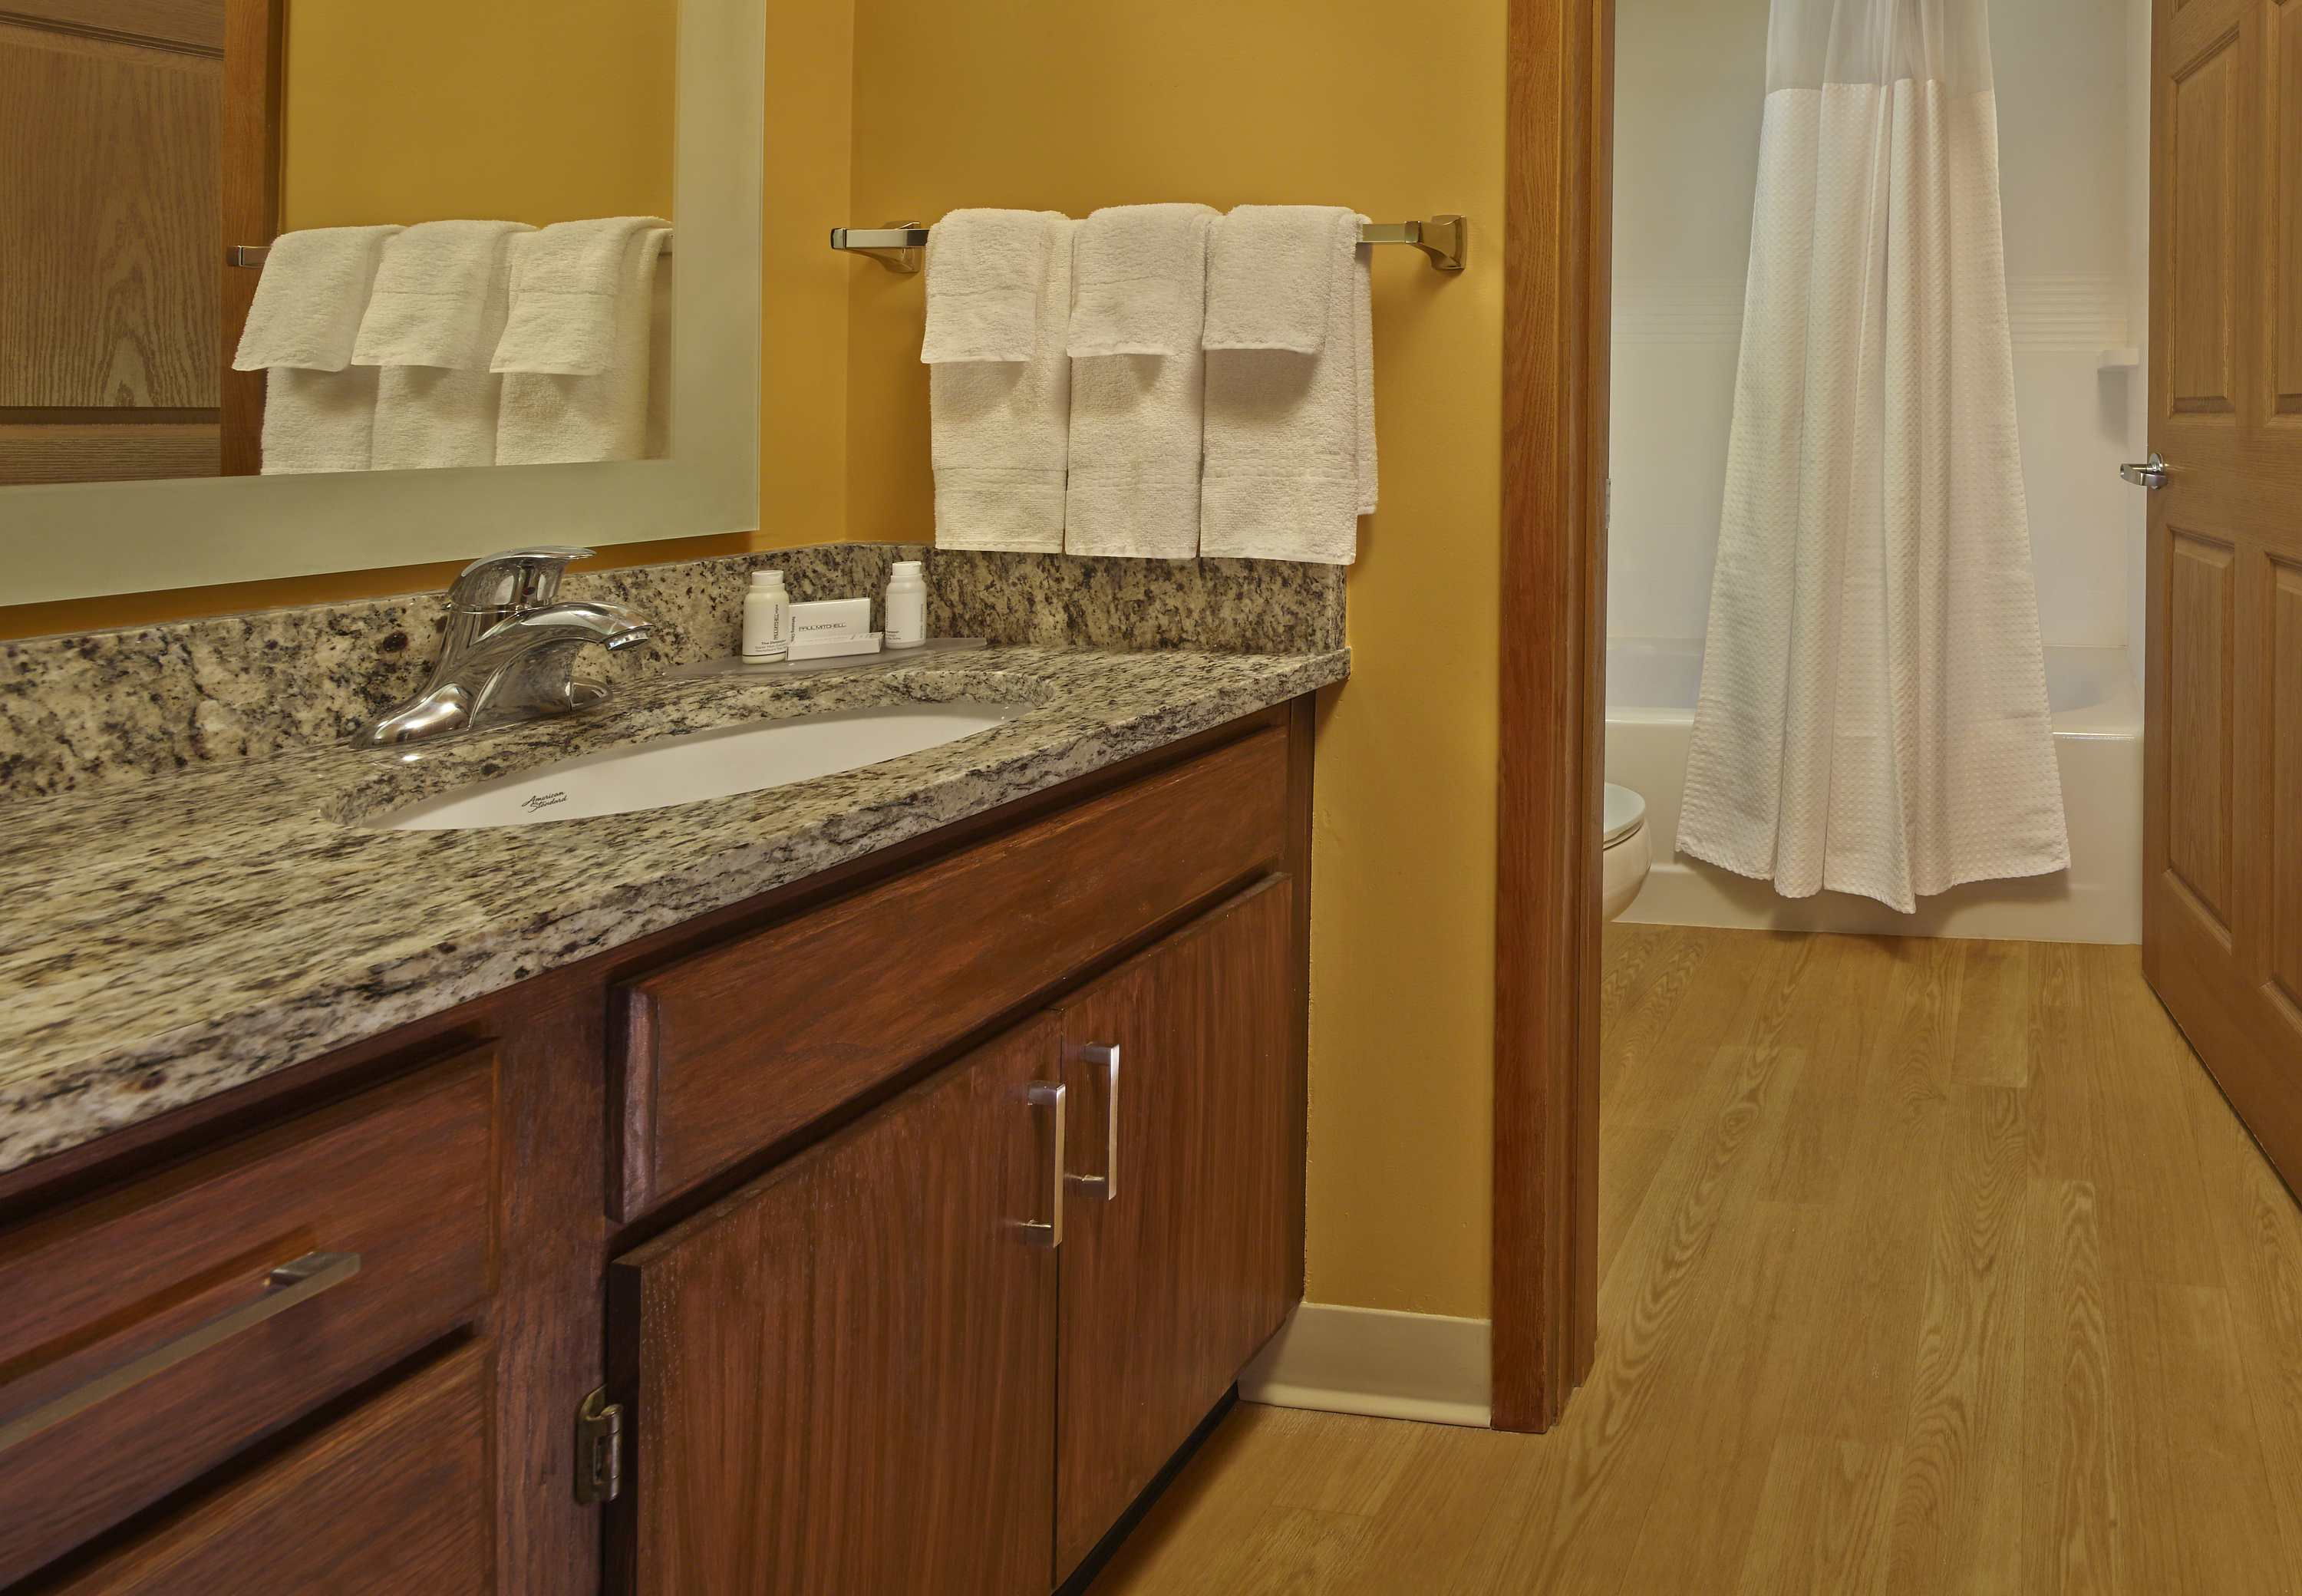 TownePlace Suites by Marriott Boston Tewksbury/Andover image 18